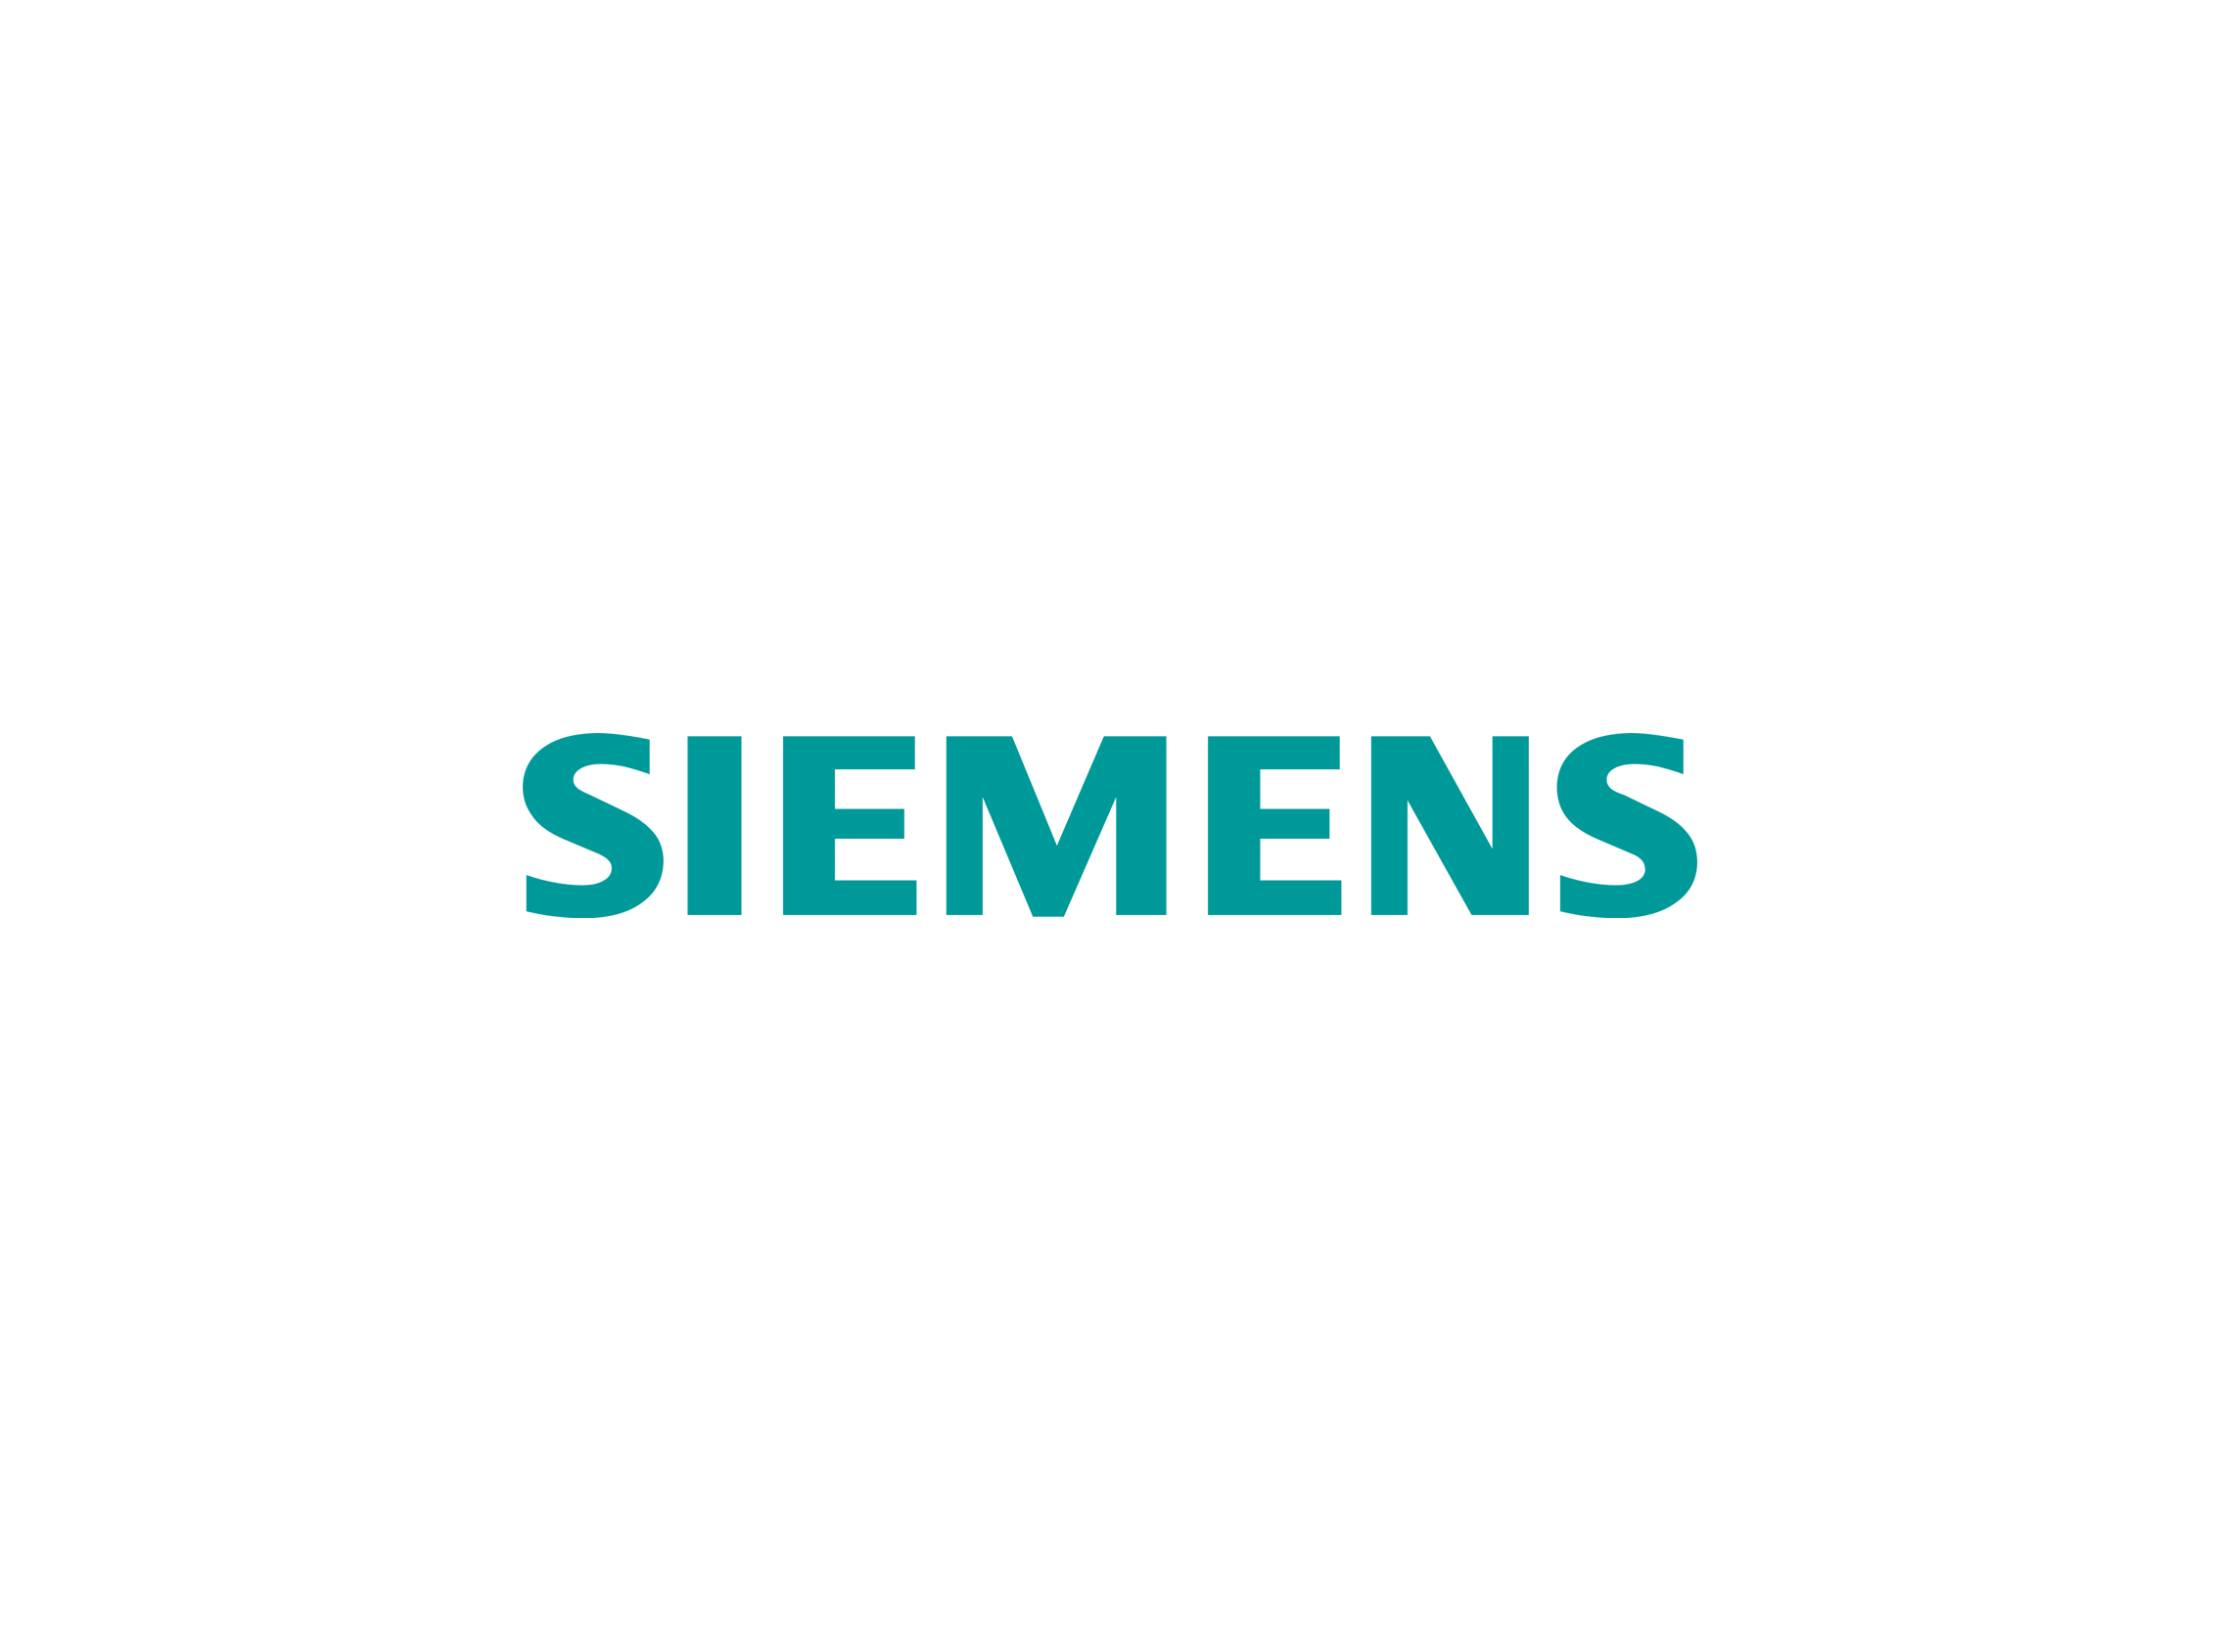 Cliparts siemens clipart black and white stock Logo siemens clipart - ClipartFest clipart black and white stock